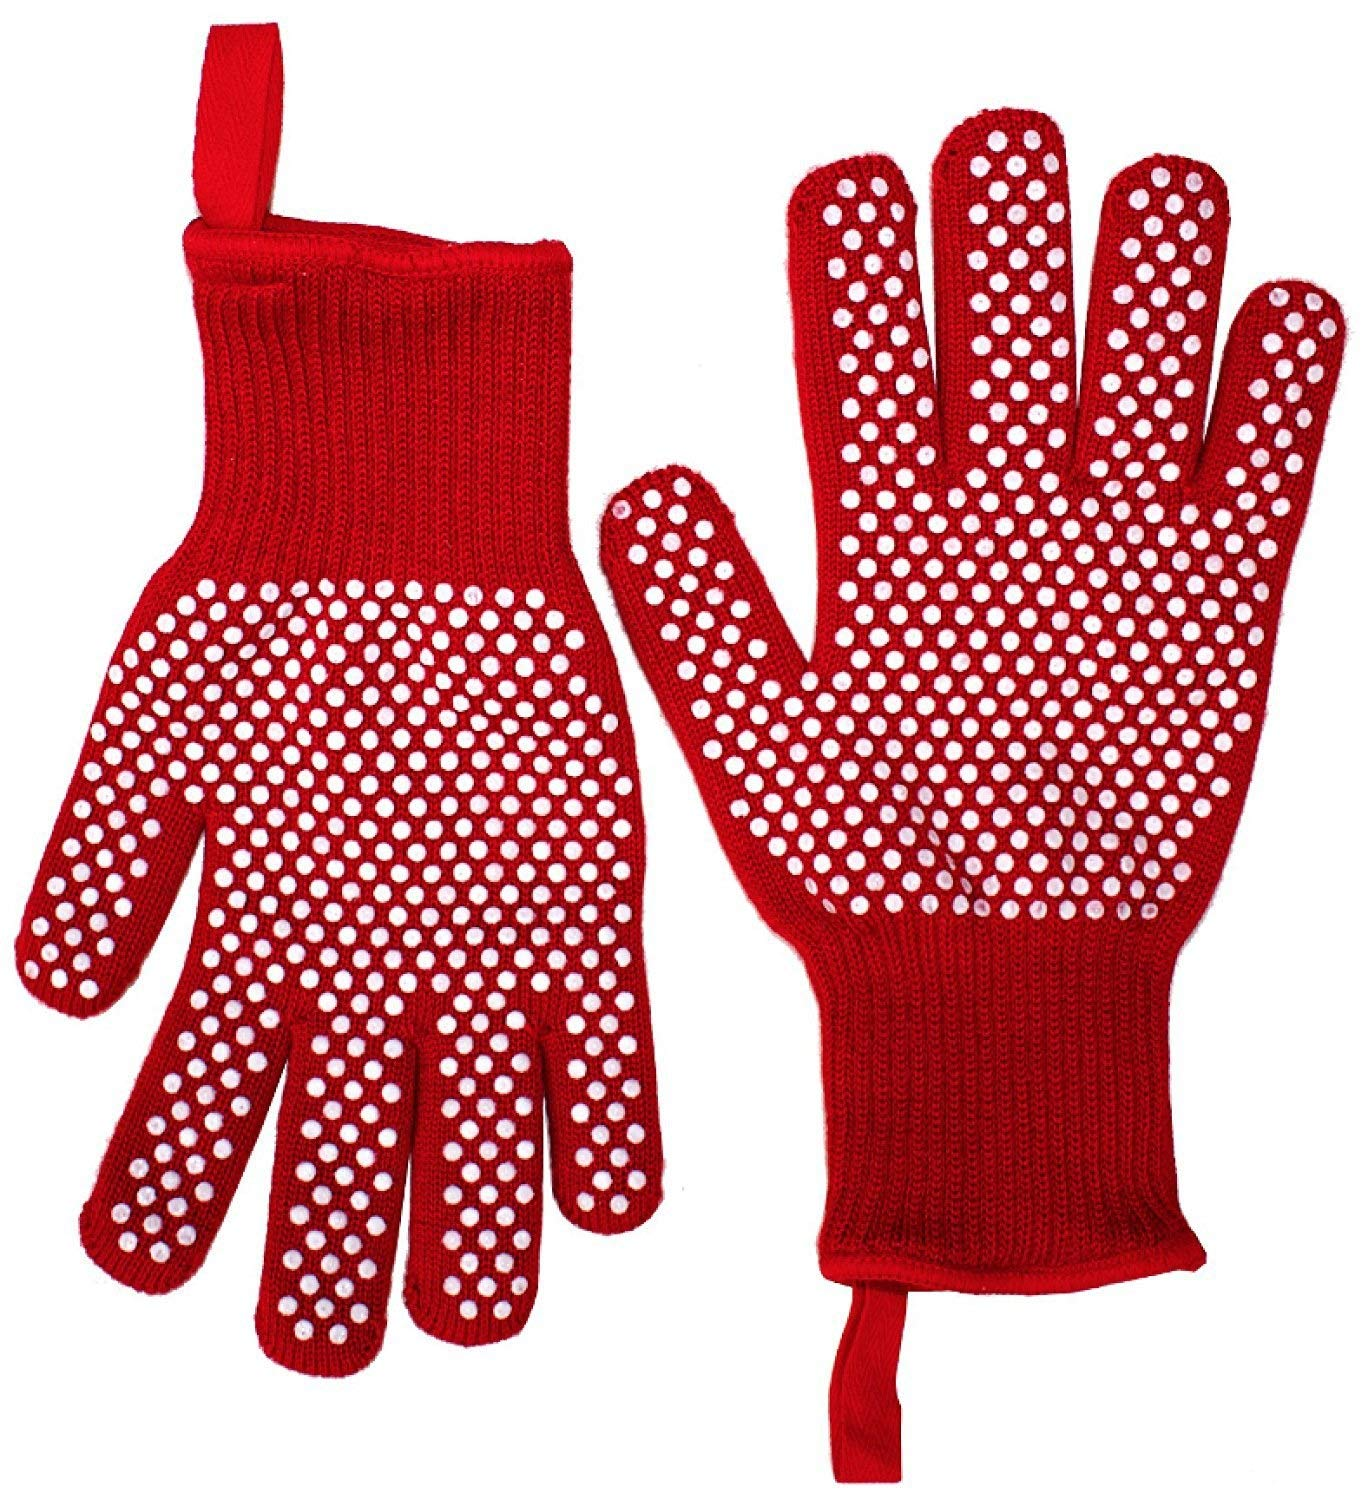 ZJYSM Comfortable Wearable Flexible Light Red Aramid Neutral High Temperature Resistant Gloves Flame Retardant Non-Slip High Temperature 500 Degree BBQ Baking Barbecue Gloves Gloves